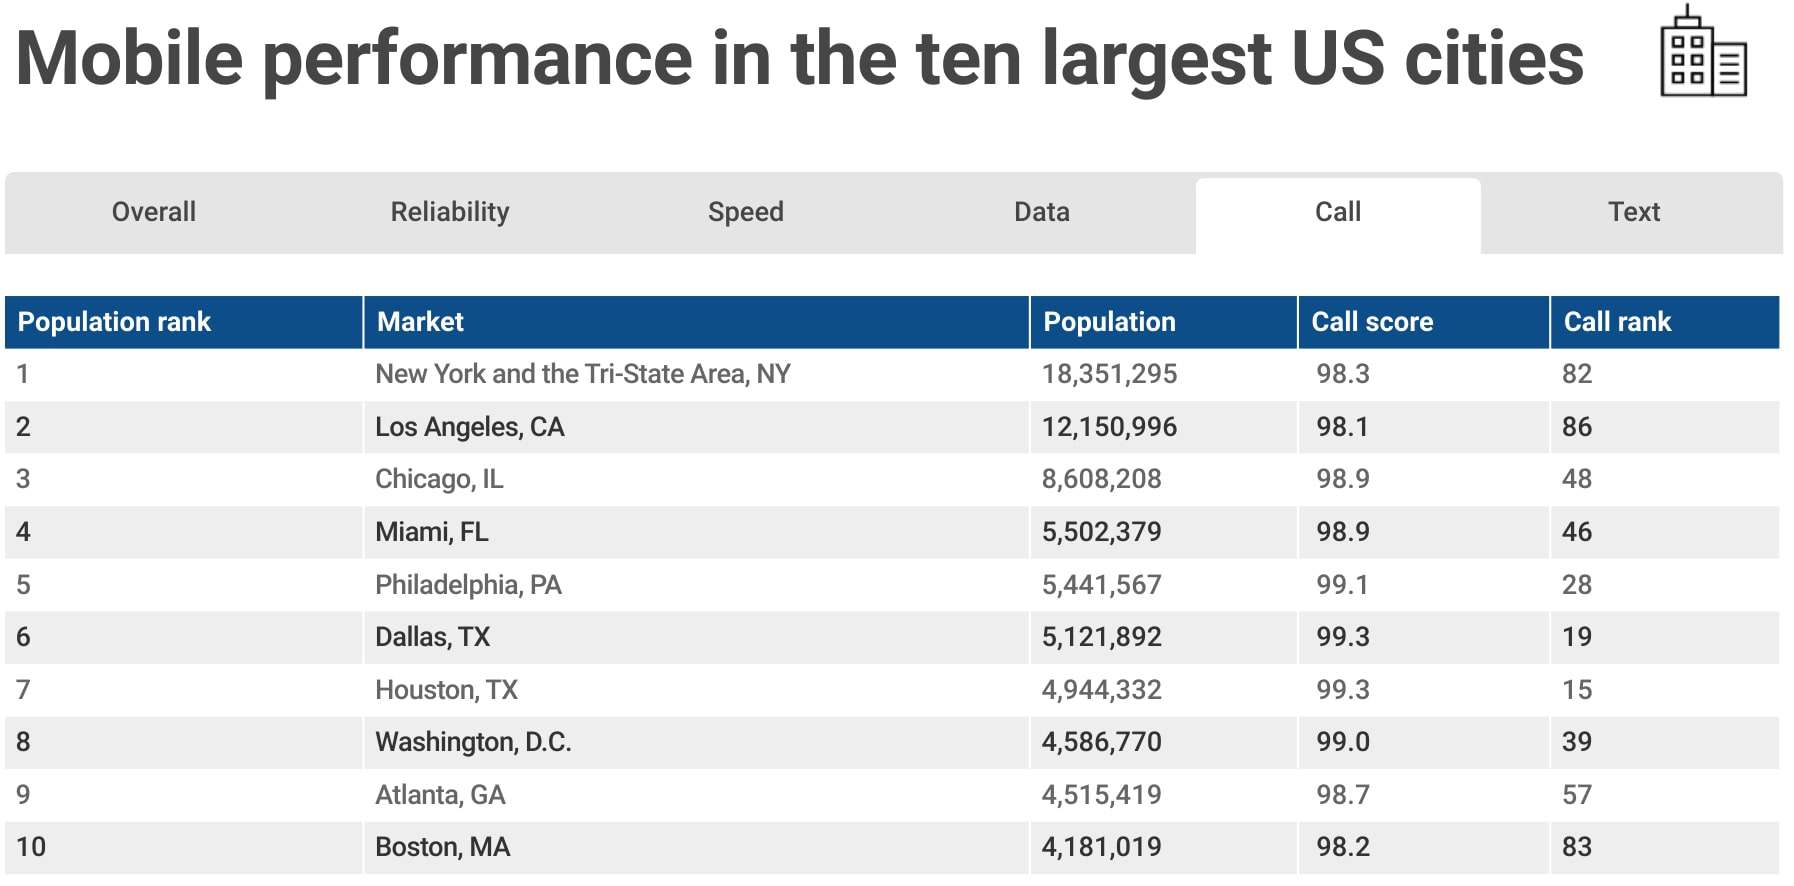 RootMetrics Mobile Performance In Top Largest Cities 1H 2018 05